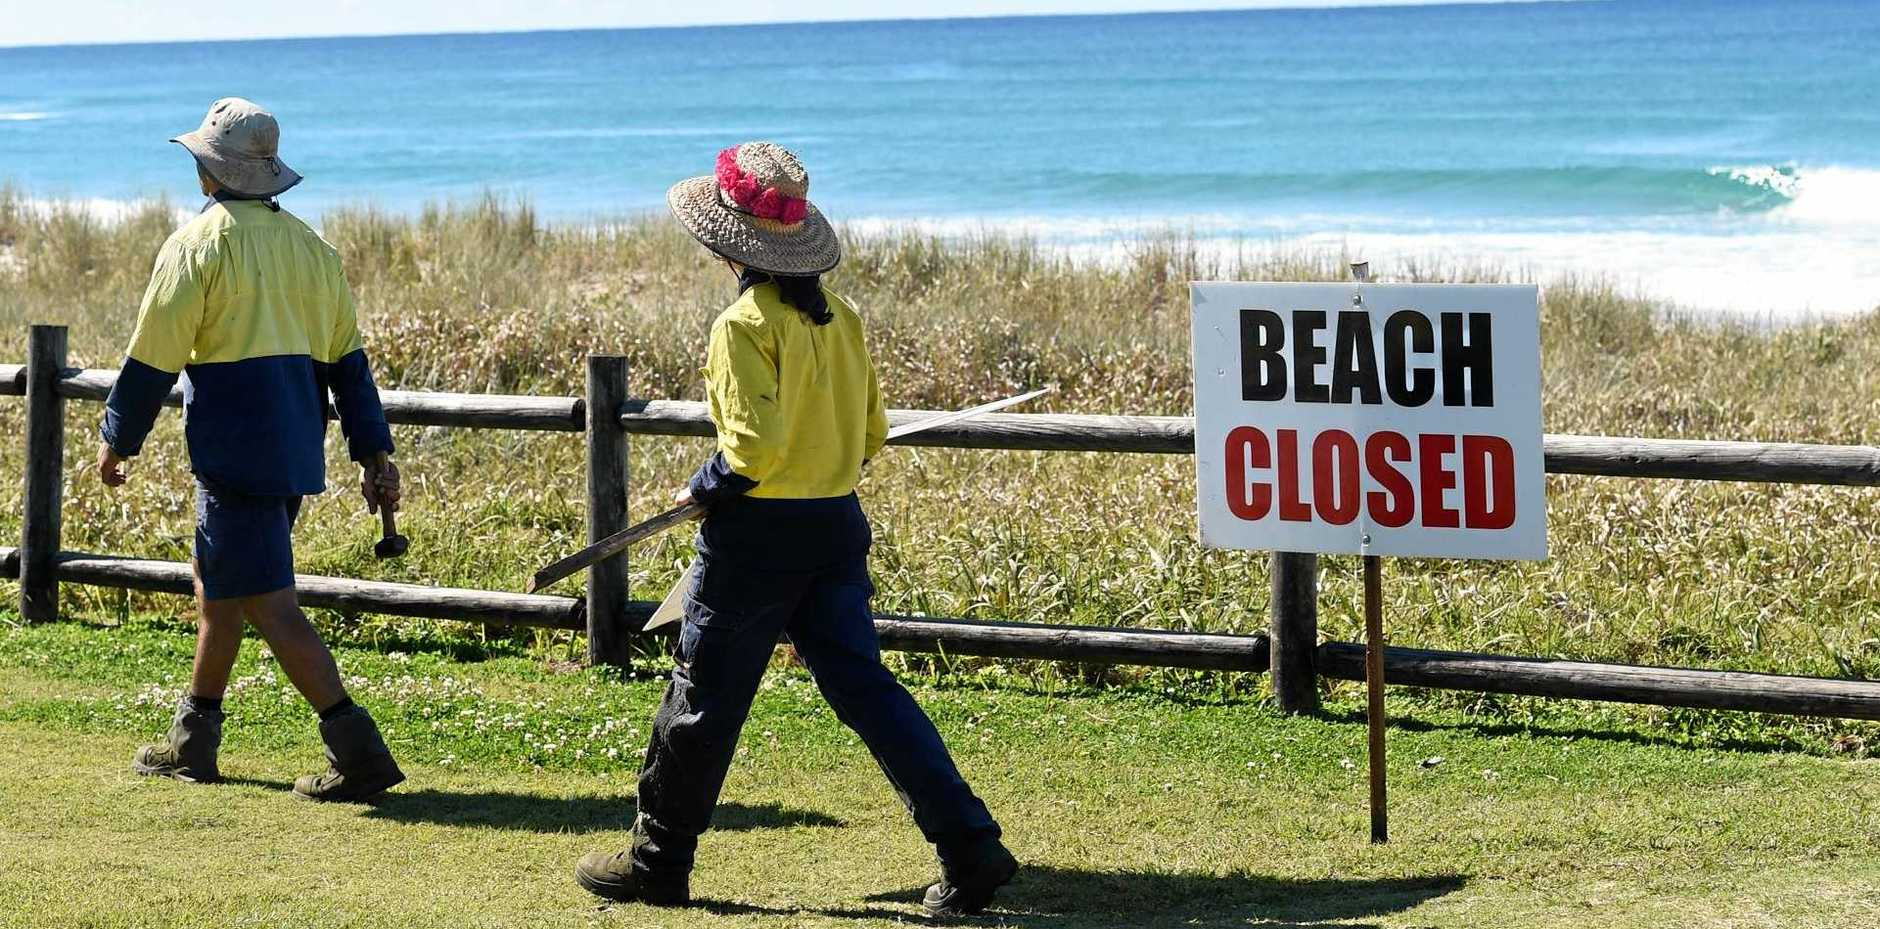 SIGHTING: 7 Mile Beach at Lennox Head was closed after a reported shark sighting in the area. Photo Marc Stapelberg / The Northern Star